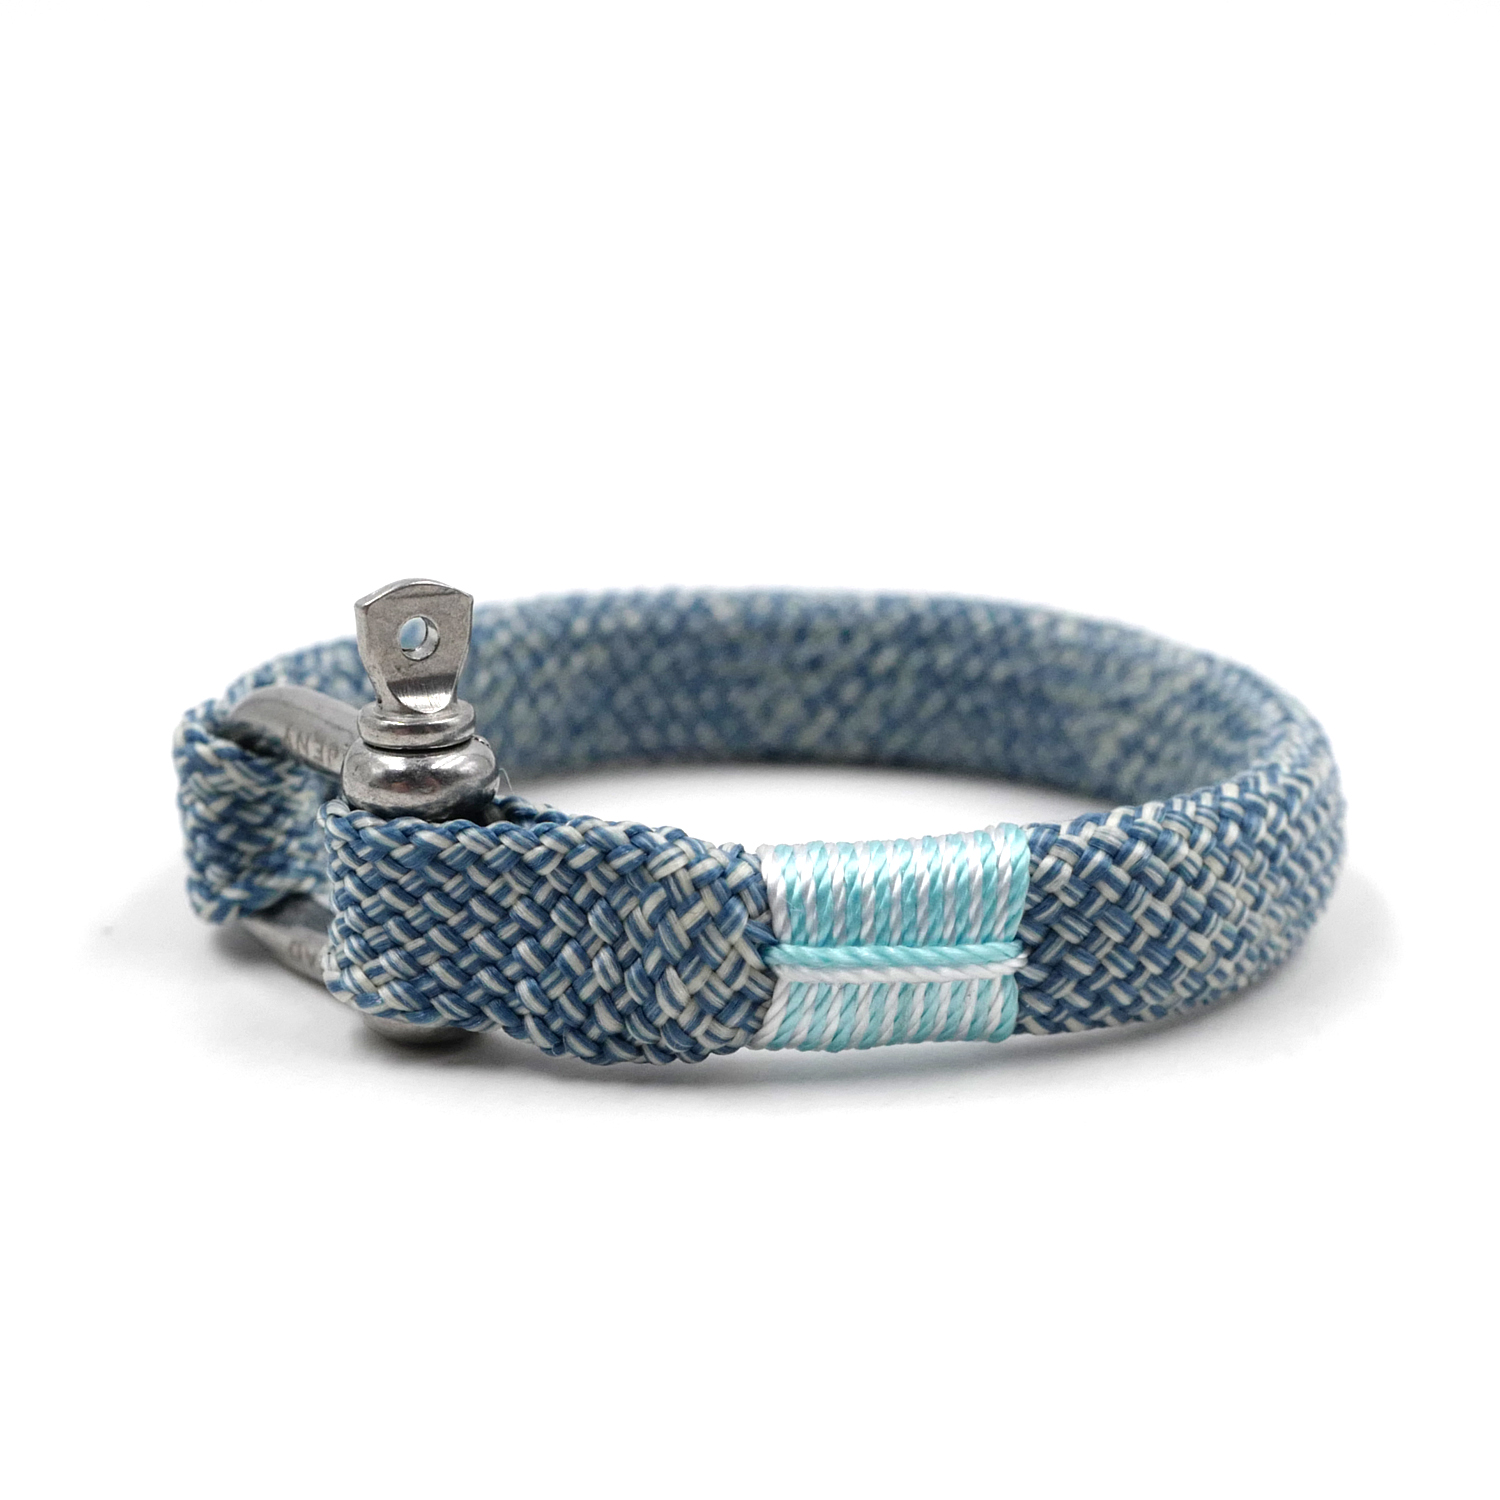 BRT-N521 Unisex Chic Nautical Braided Bracelet Hand-made Yachting Rope Military Paracord Bracelet Wristband With D-Shackle